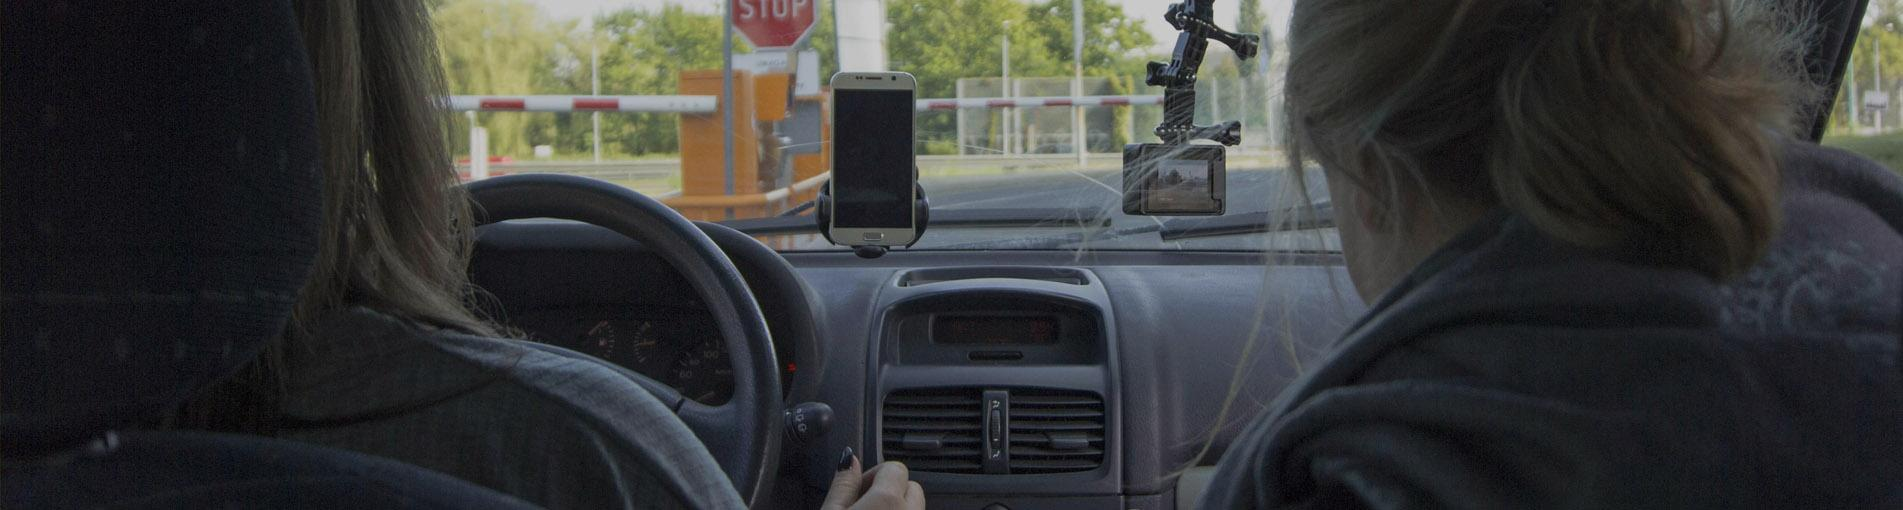 In-car user testing. How to test a mobile app with drivers?